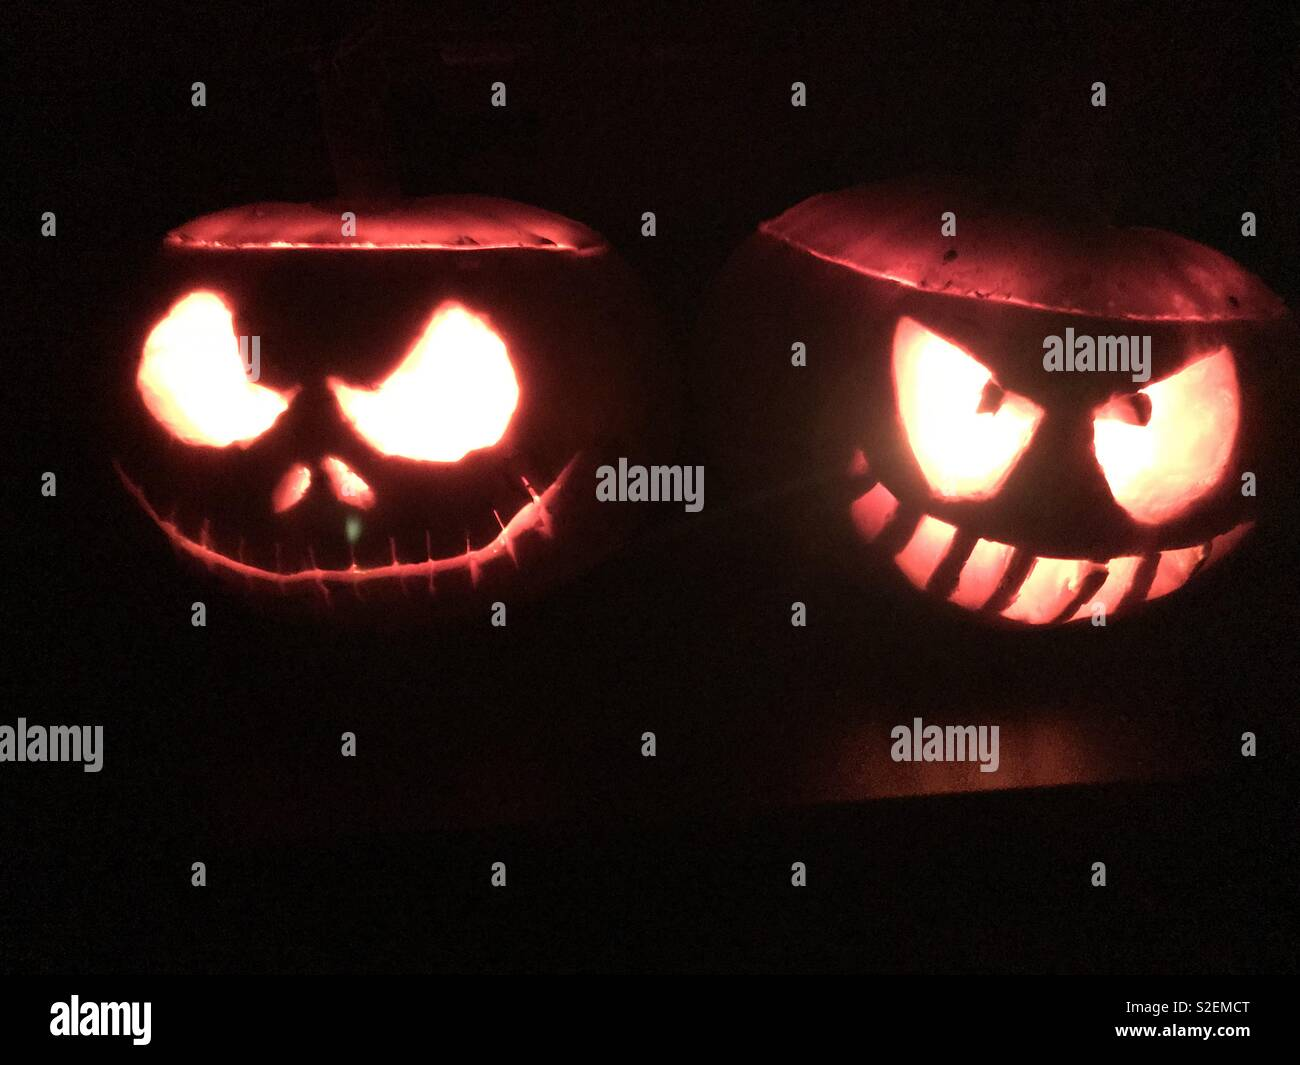 Nightmare Before Christmas Pumpkin Stock Photos & Nightmare Before ...